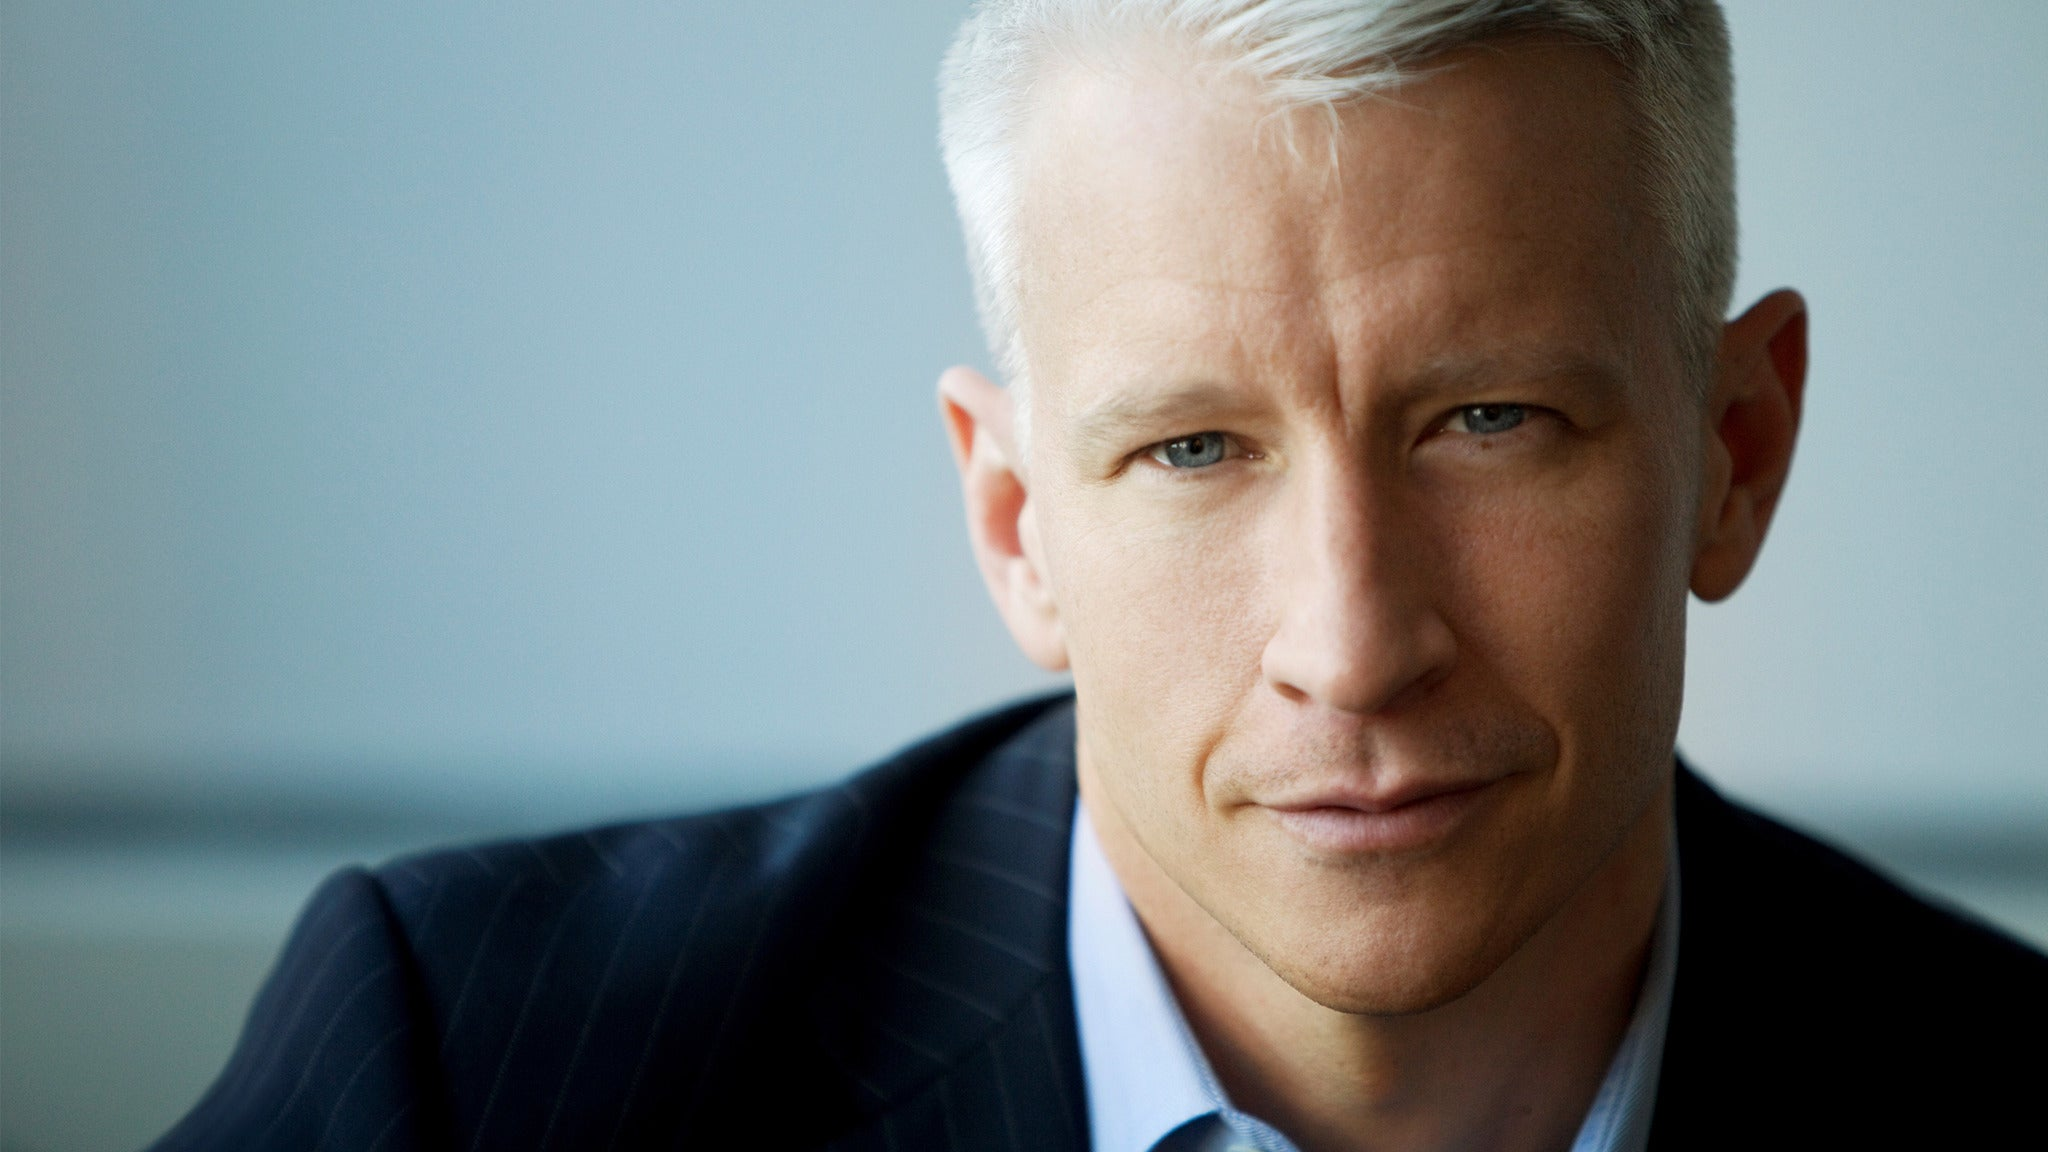 AC2 : An Intimate Evening With Anderson Cooper & Andy Cohen